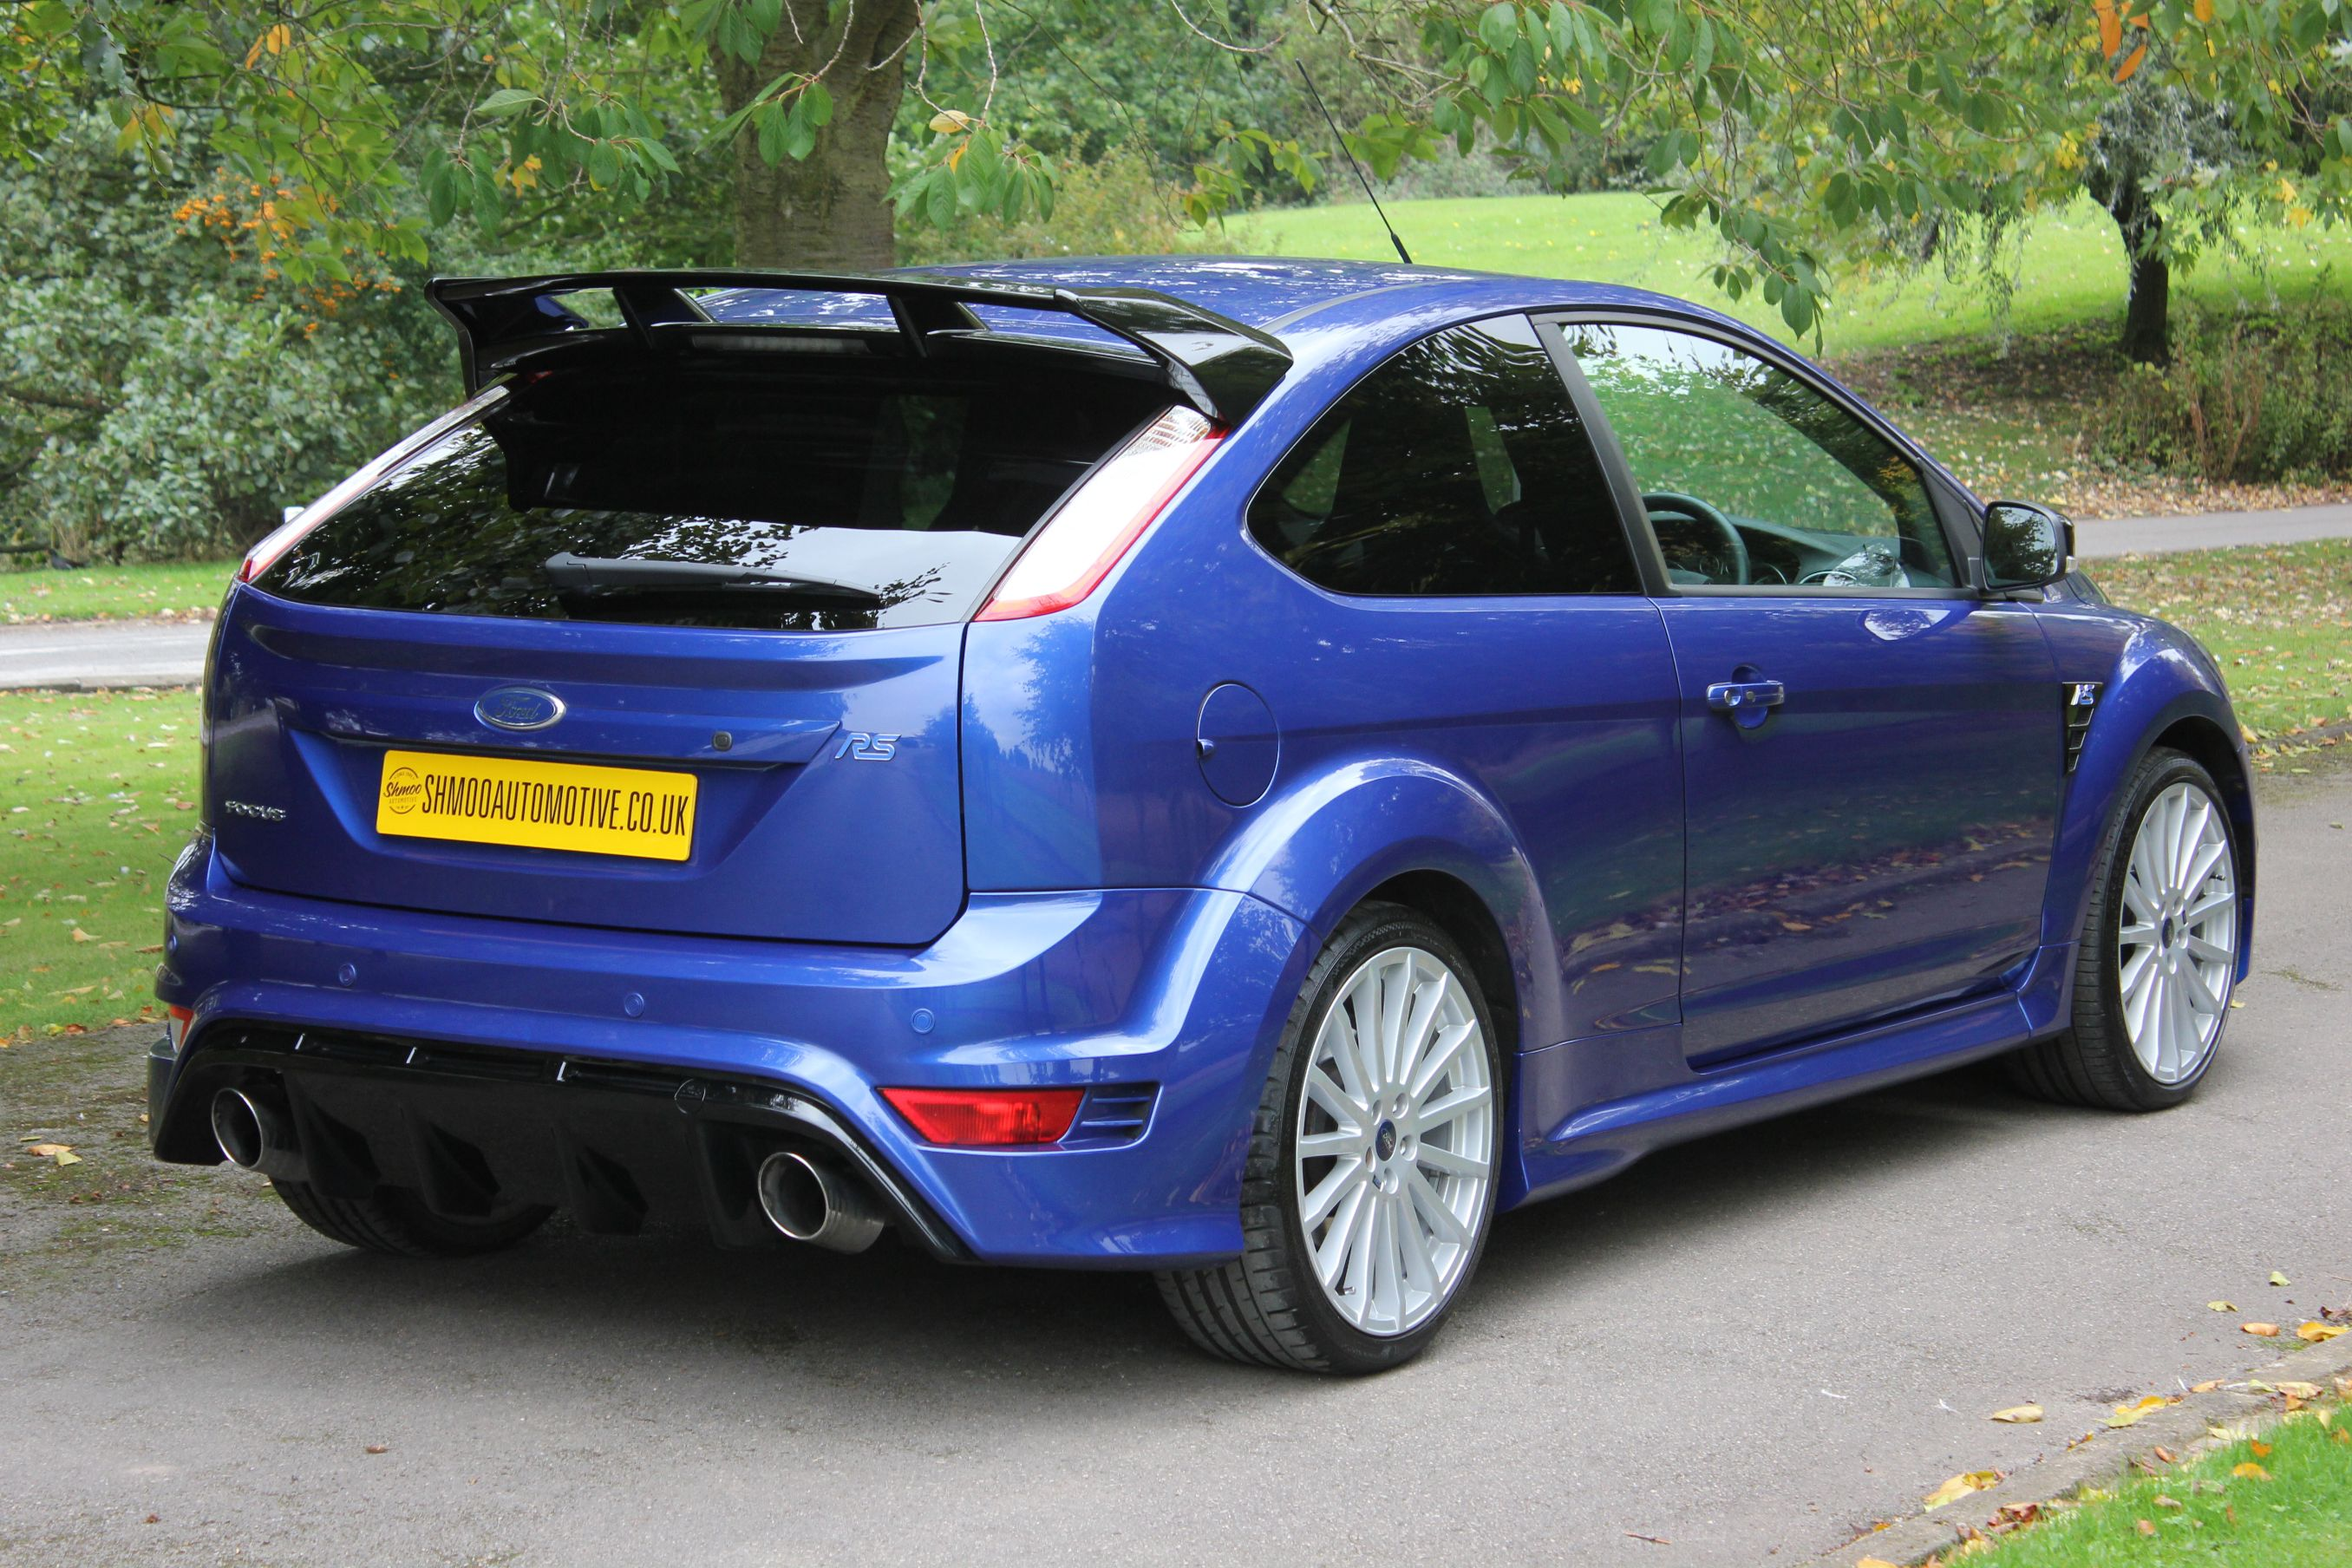 ford focus rs mk2 stunning 1 owner car with 15 000 miles ffsh shmoo automotive shmoo automotive. Black Bedroom Furniture Sets. Home Design Ideas